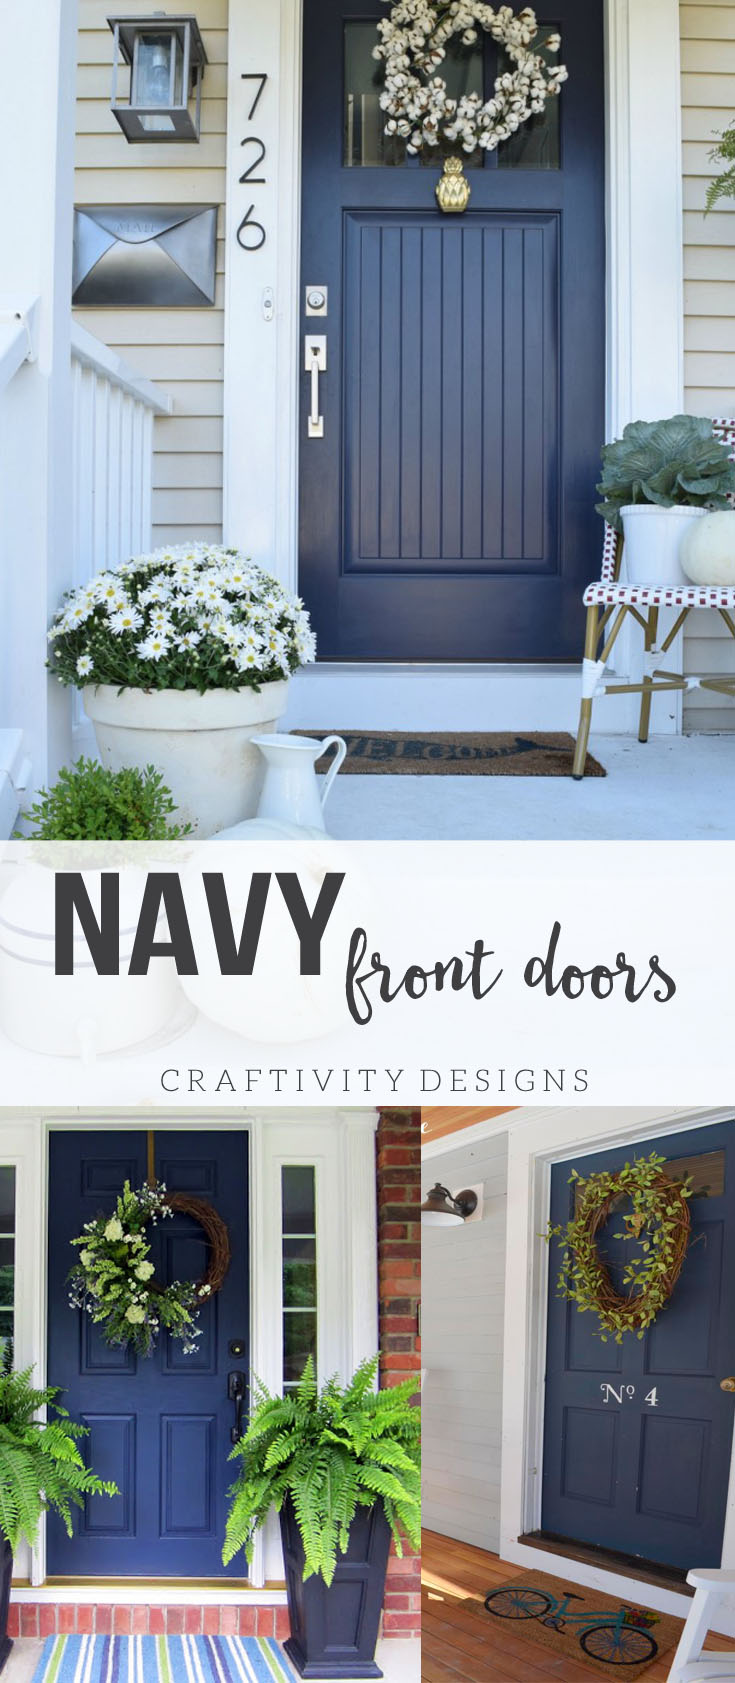 Exterior colors navy front door ideas craftivity designs navy front door ideas exterior colors patio ideas porch ideas exterior design rubansaba